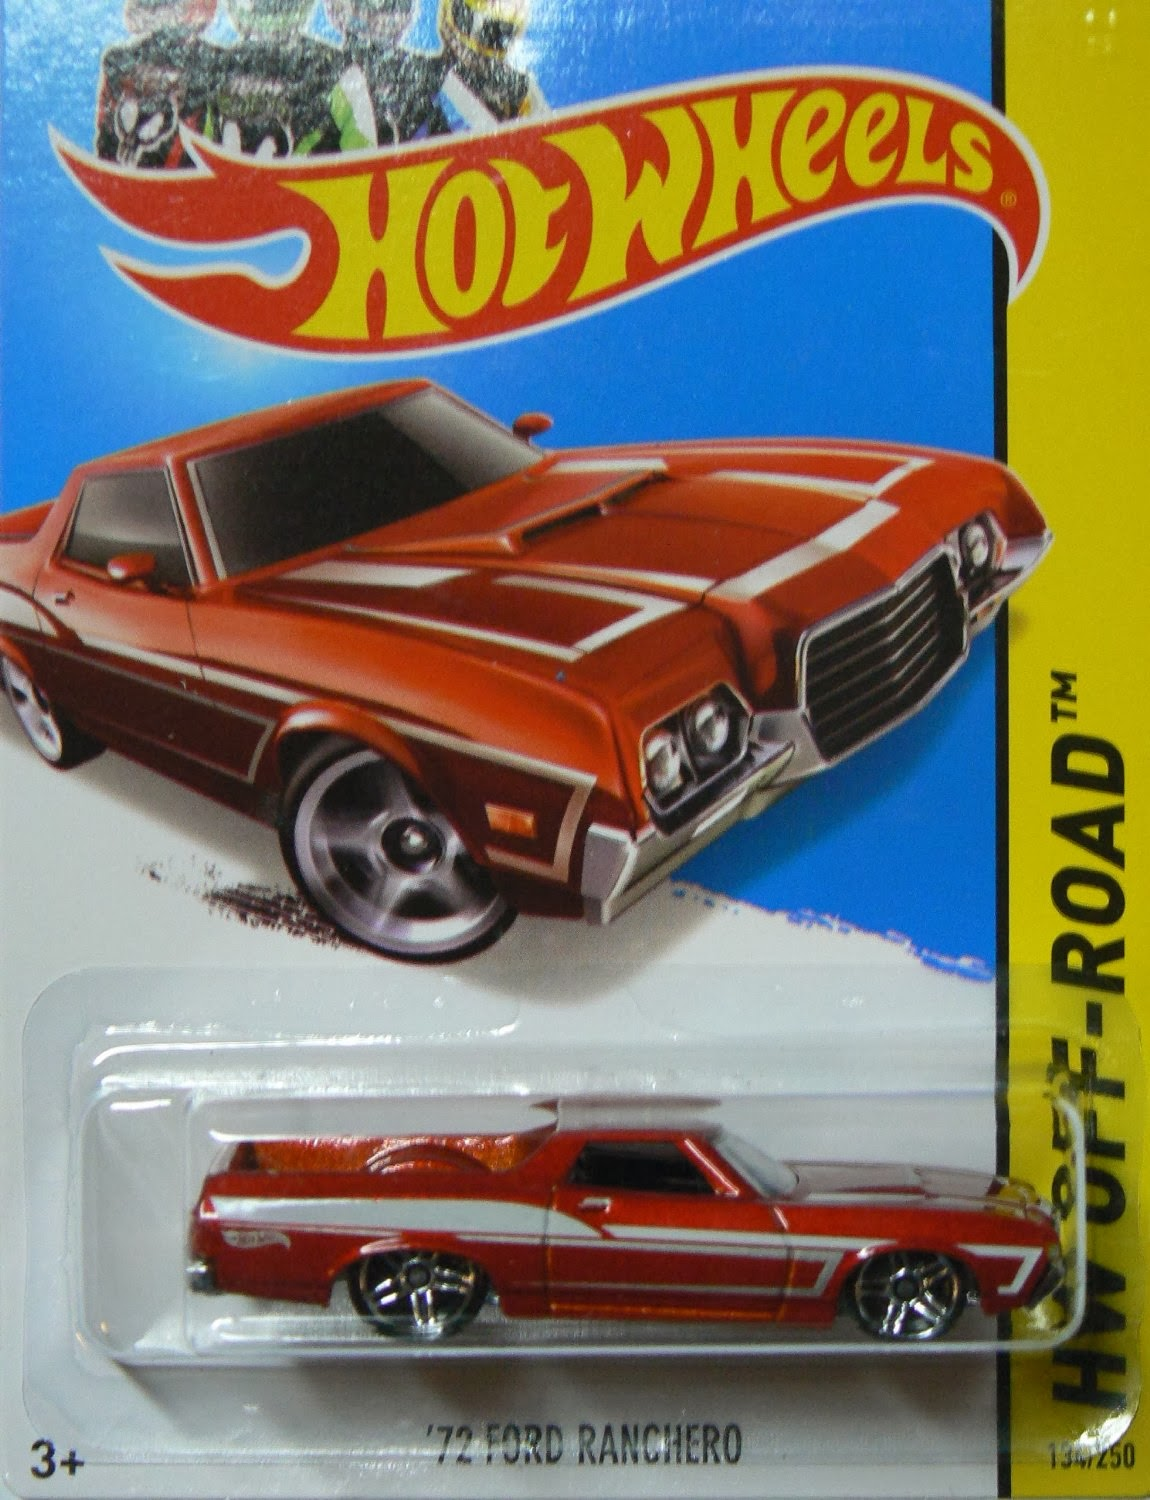 Top Trending Toys For Boys : Latest trending toys for boys and girls hot wheels